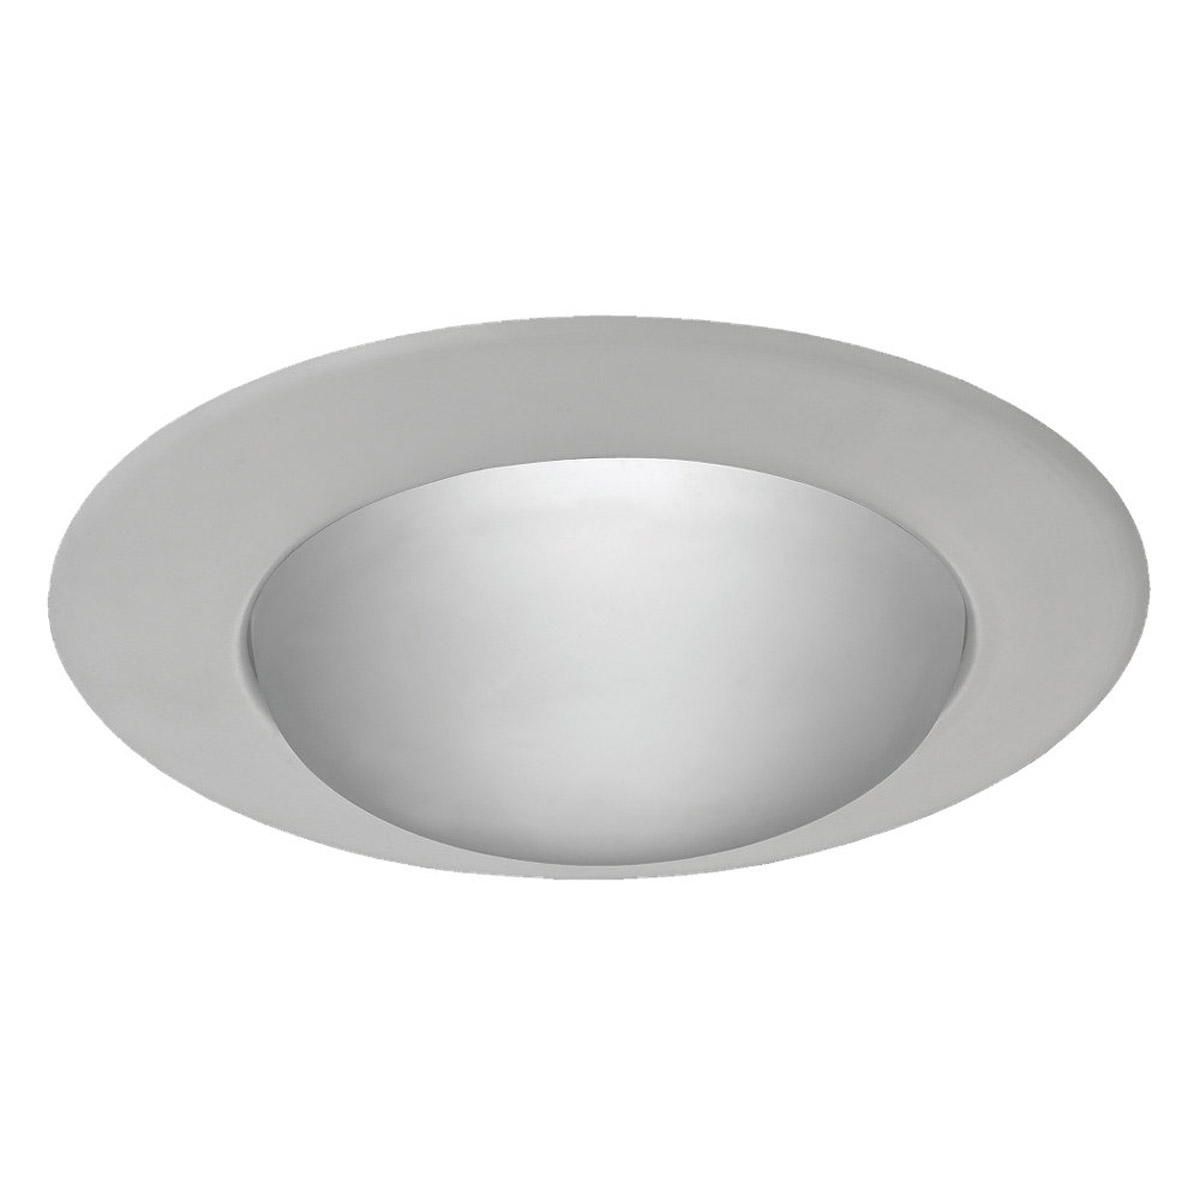 Sea Gull Lighting Signature Recessed Trim Only in White 11134AT-15